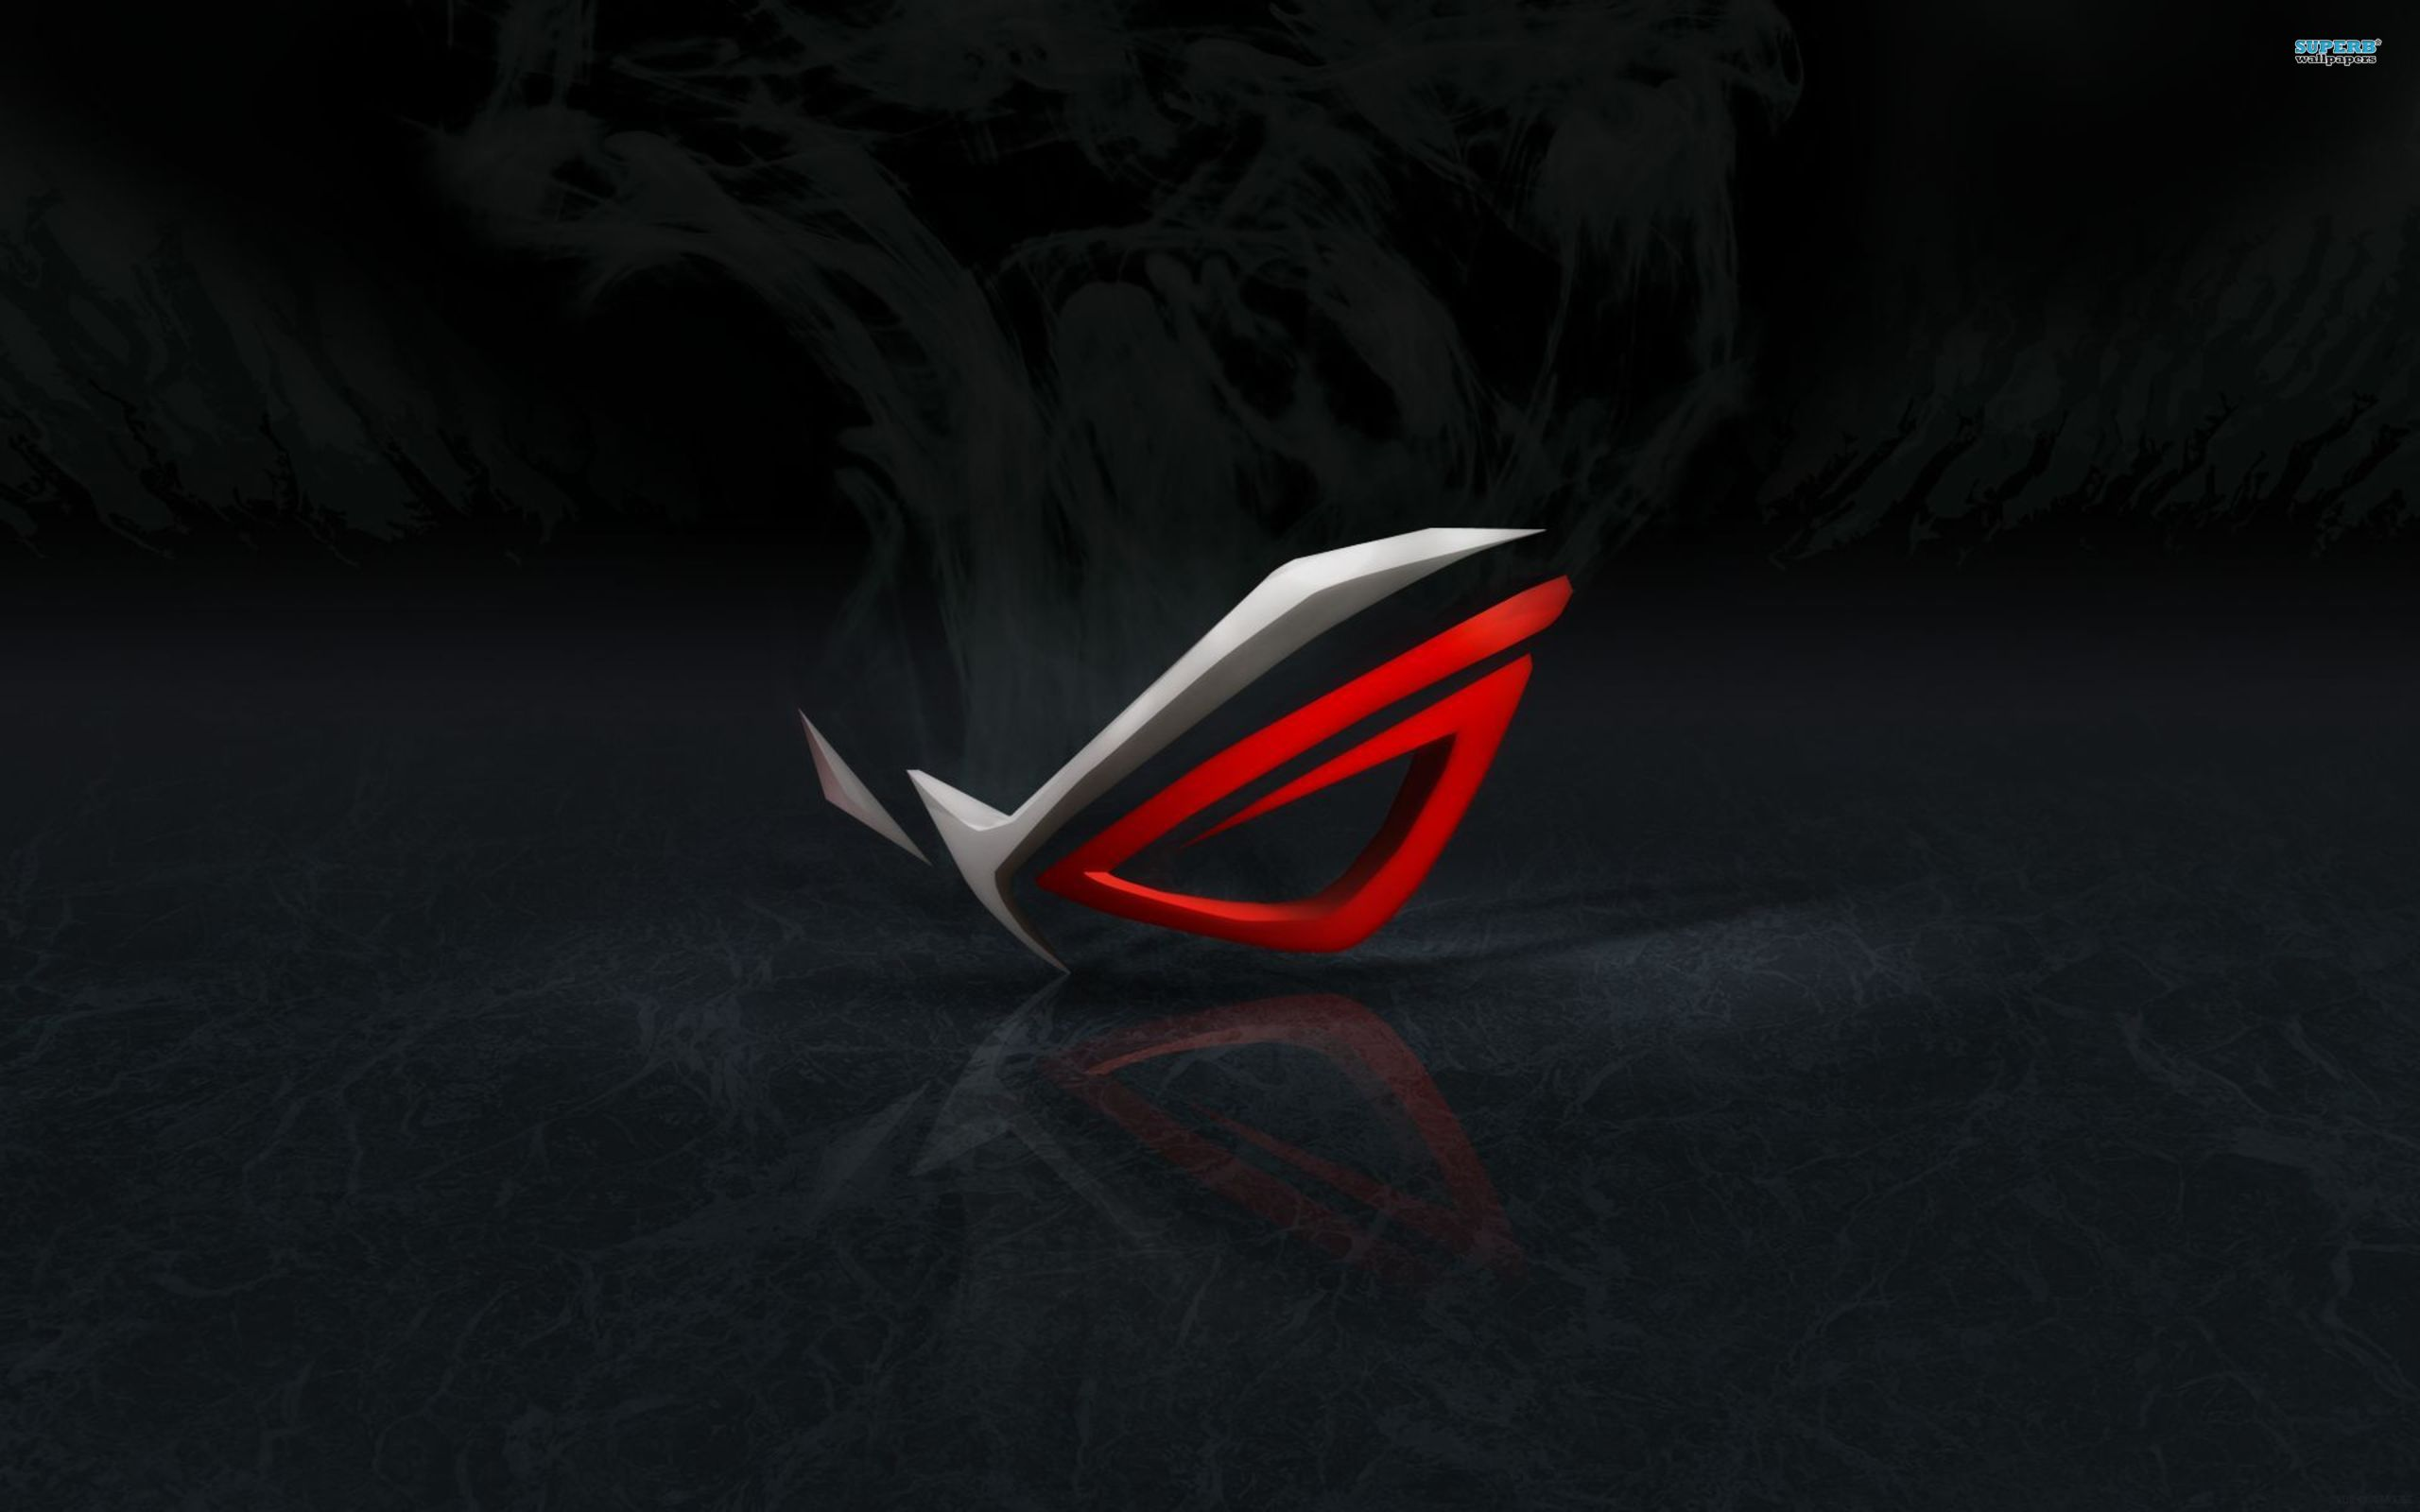 Asus Rog Desktop PC And Mac Wallpaper